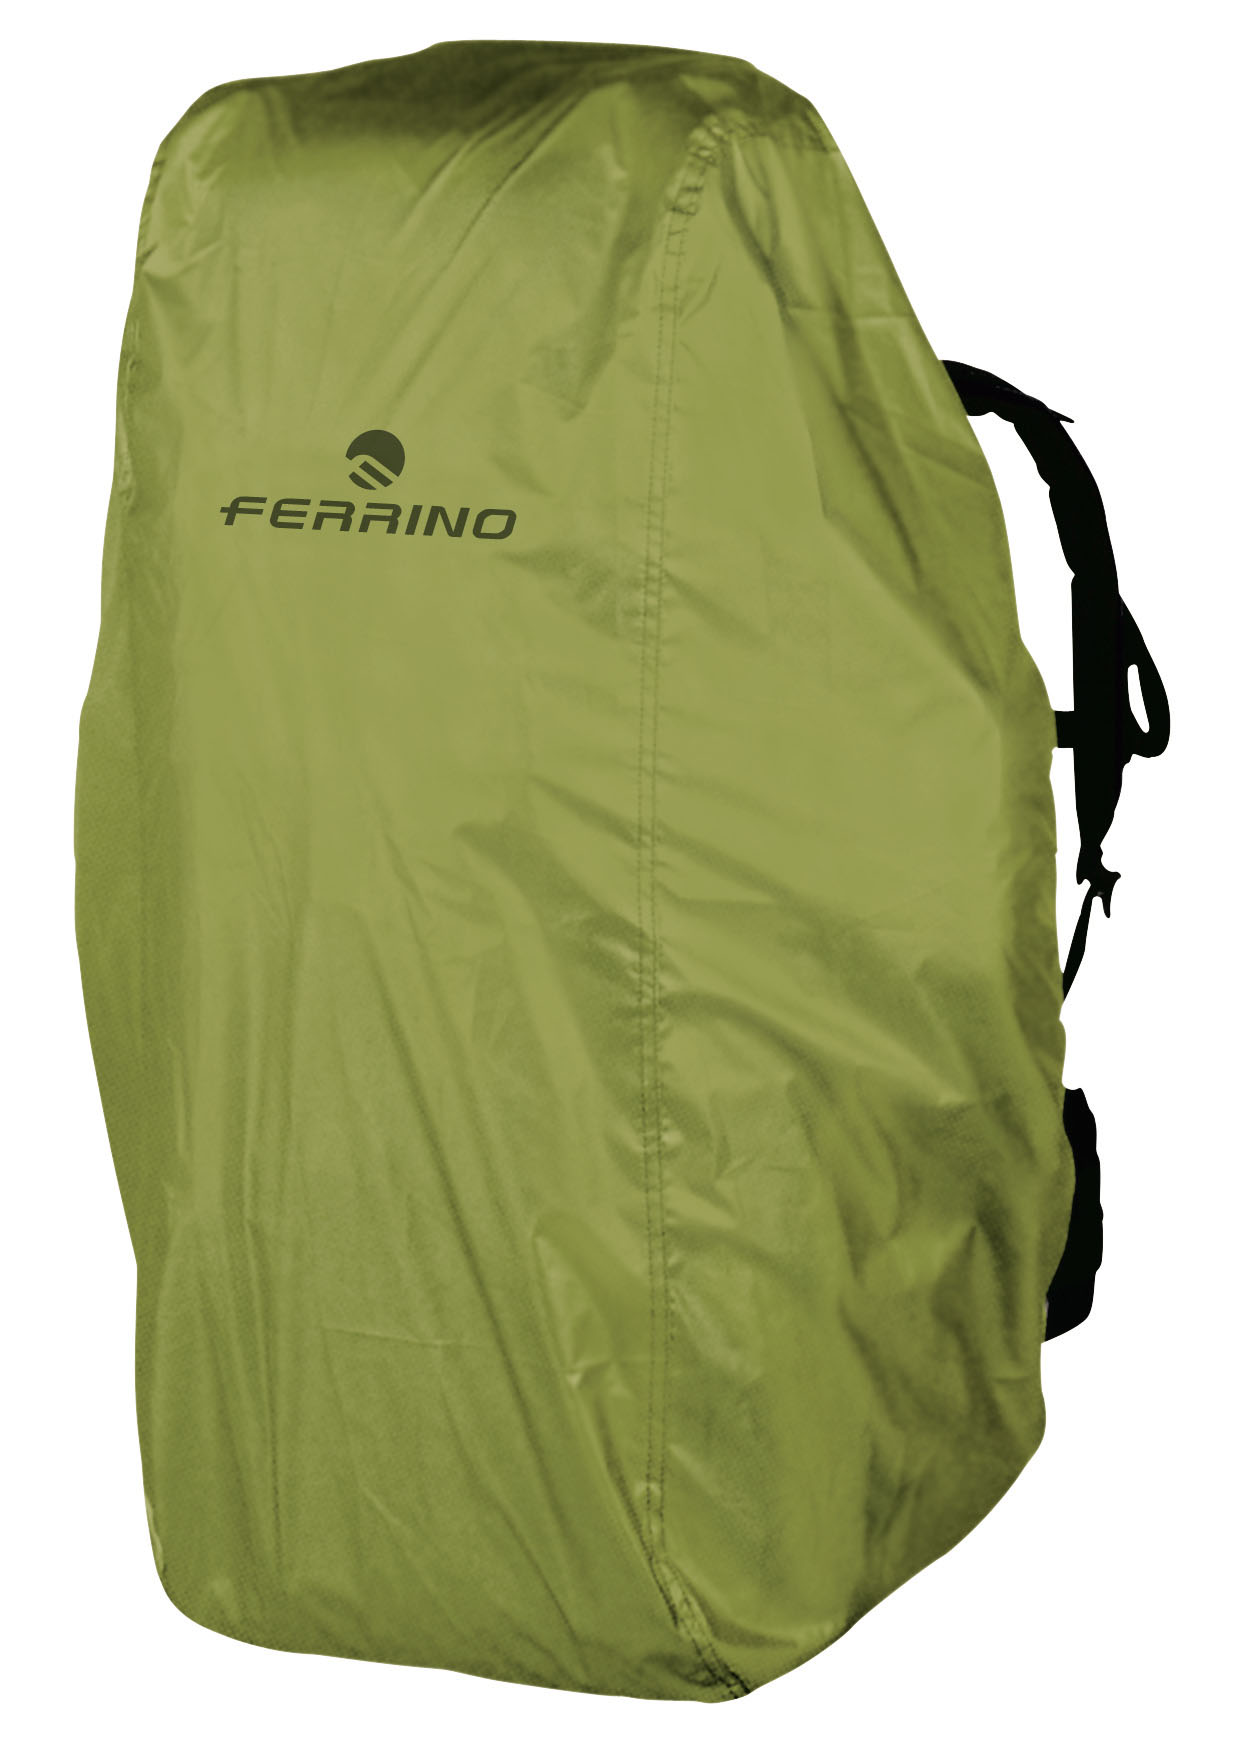 Ferrino-Waterproof-Cover-for-backpacks-40lt-to-90lt-Green